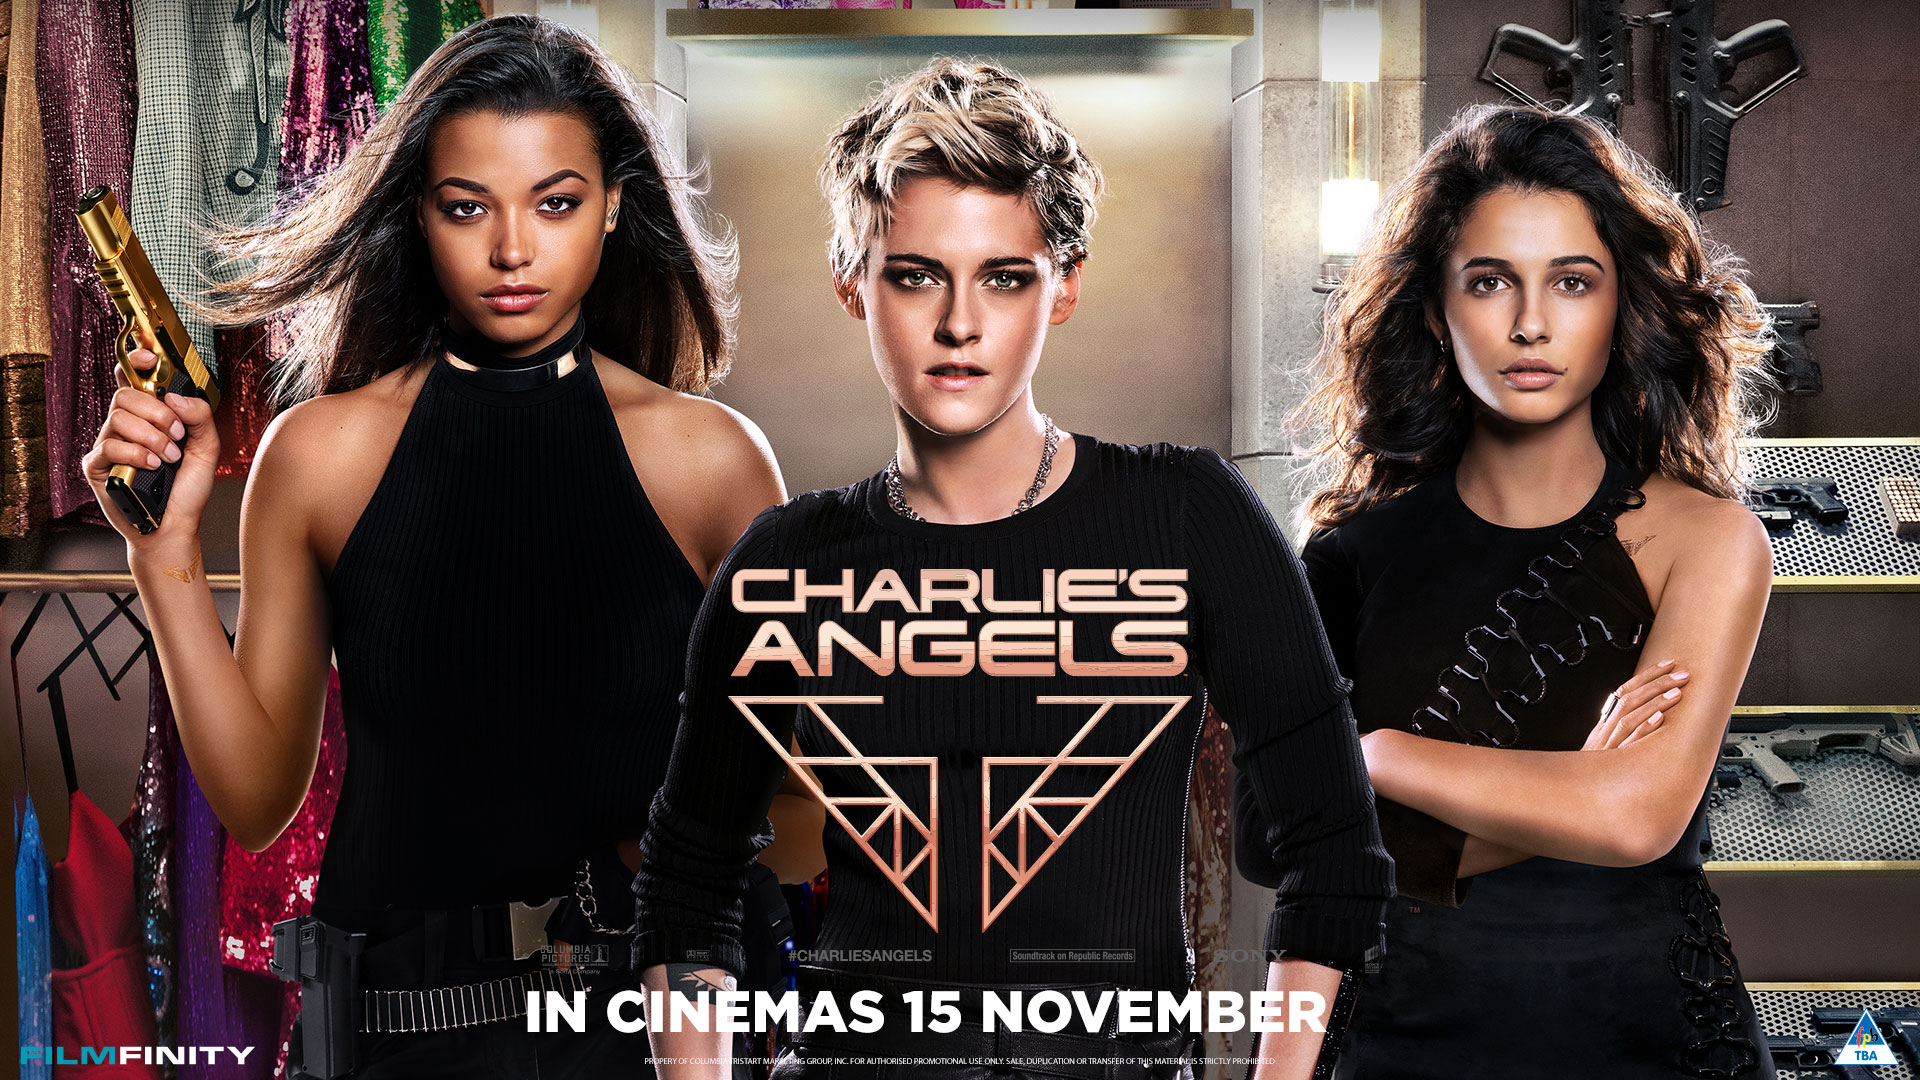 'Charlie's Angels' - landscape artwork